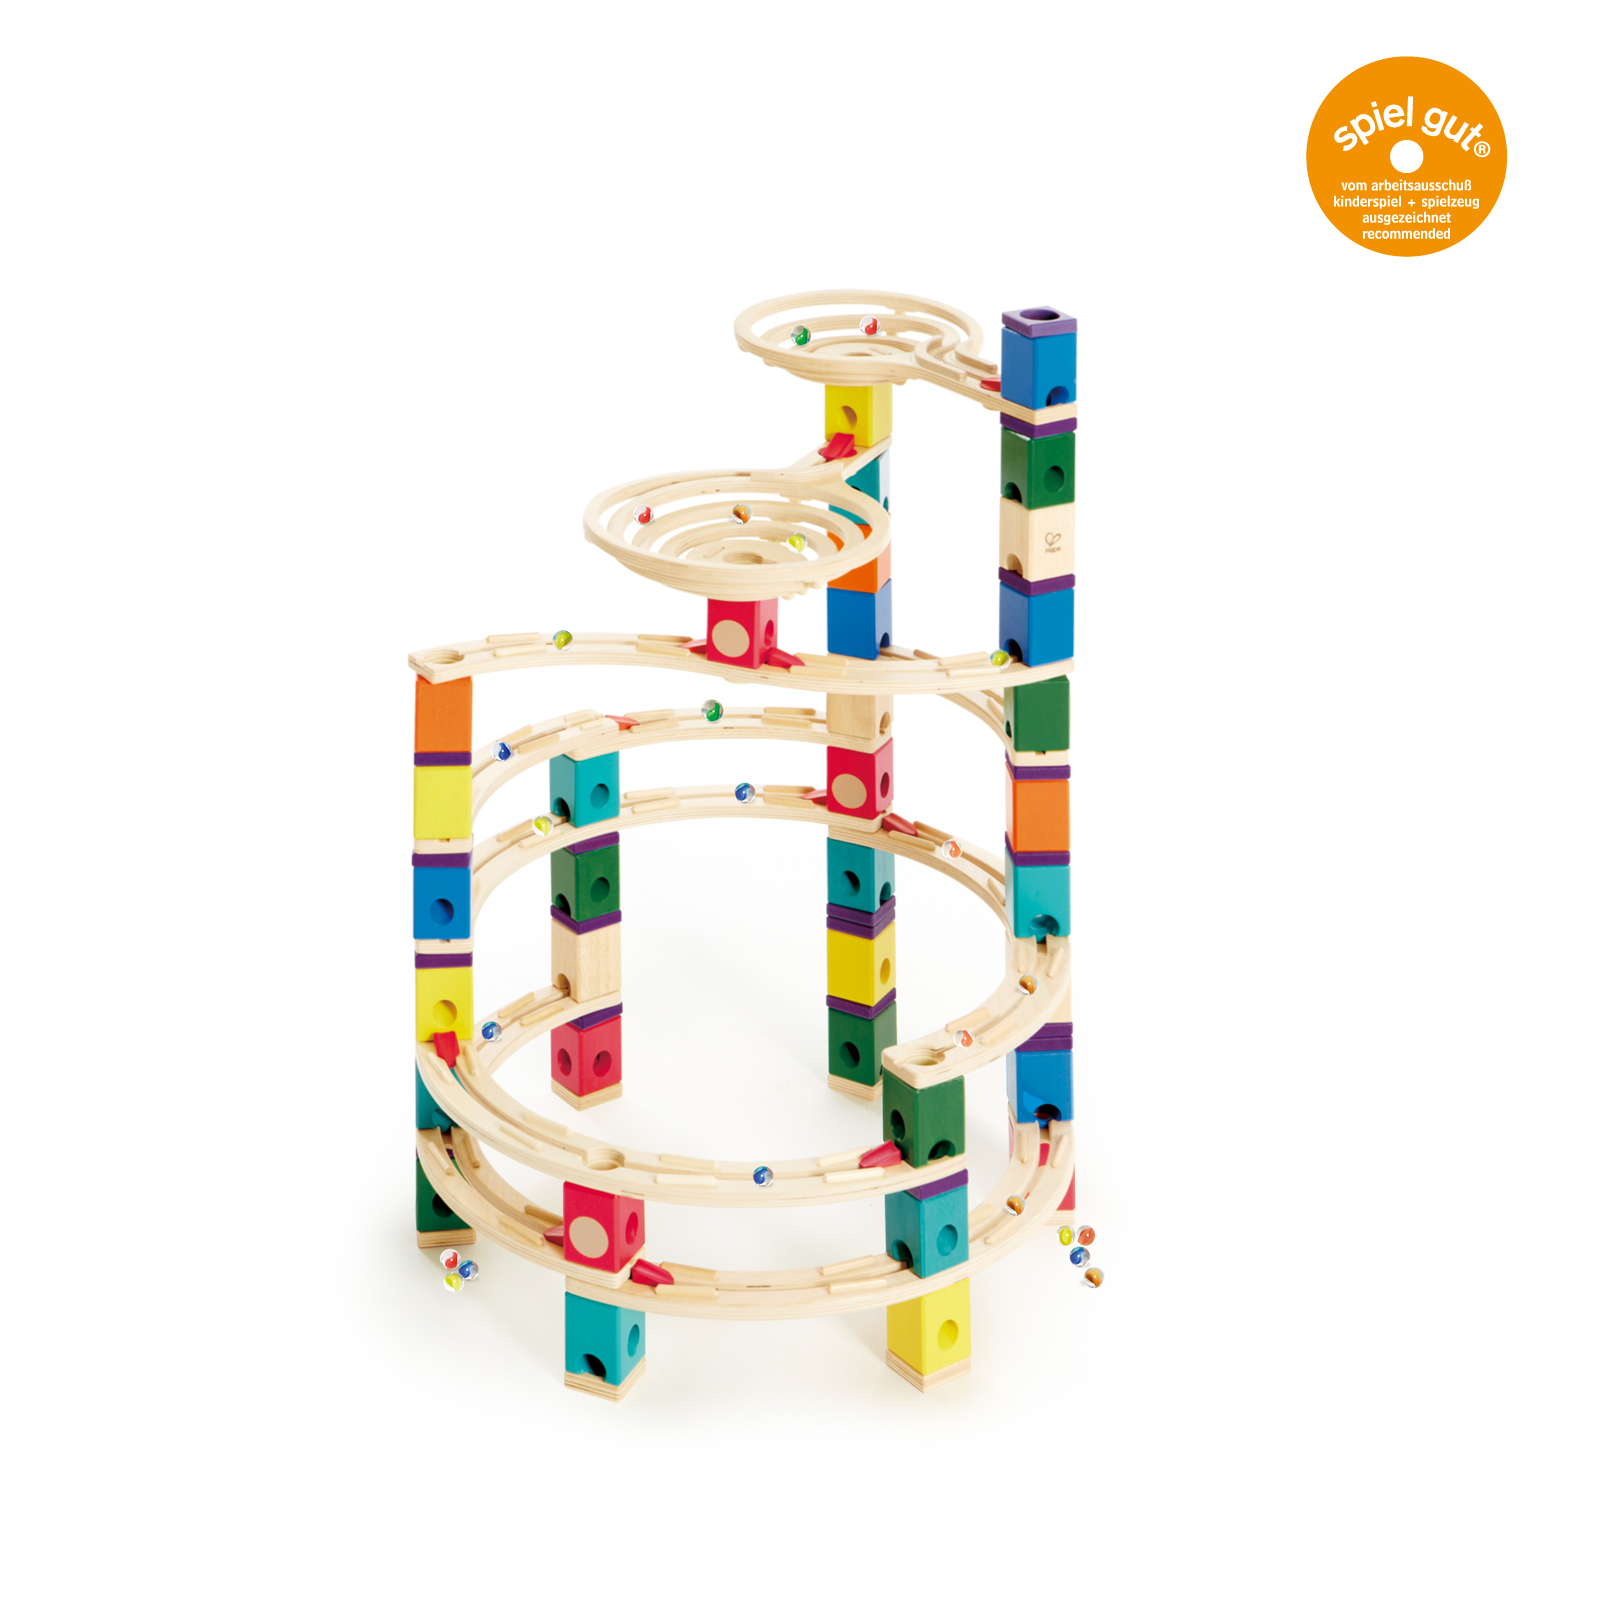 Hape: Quadrilla - The Cyclone Marble Run image